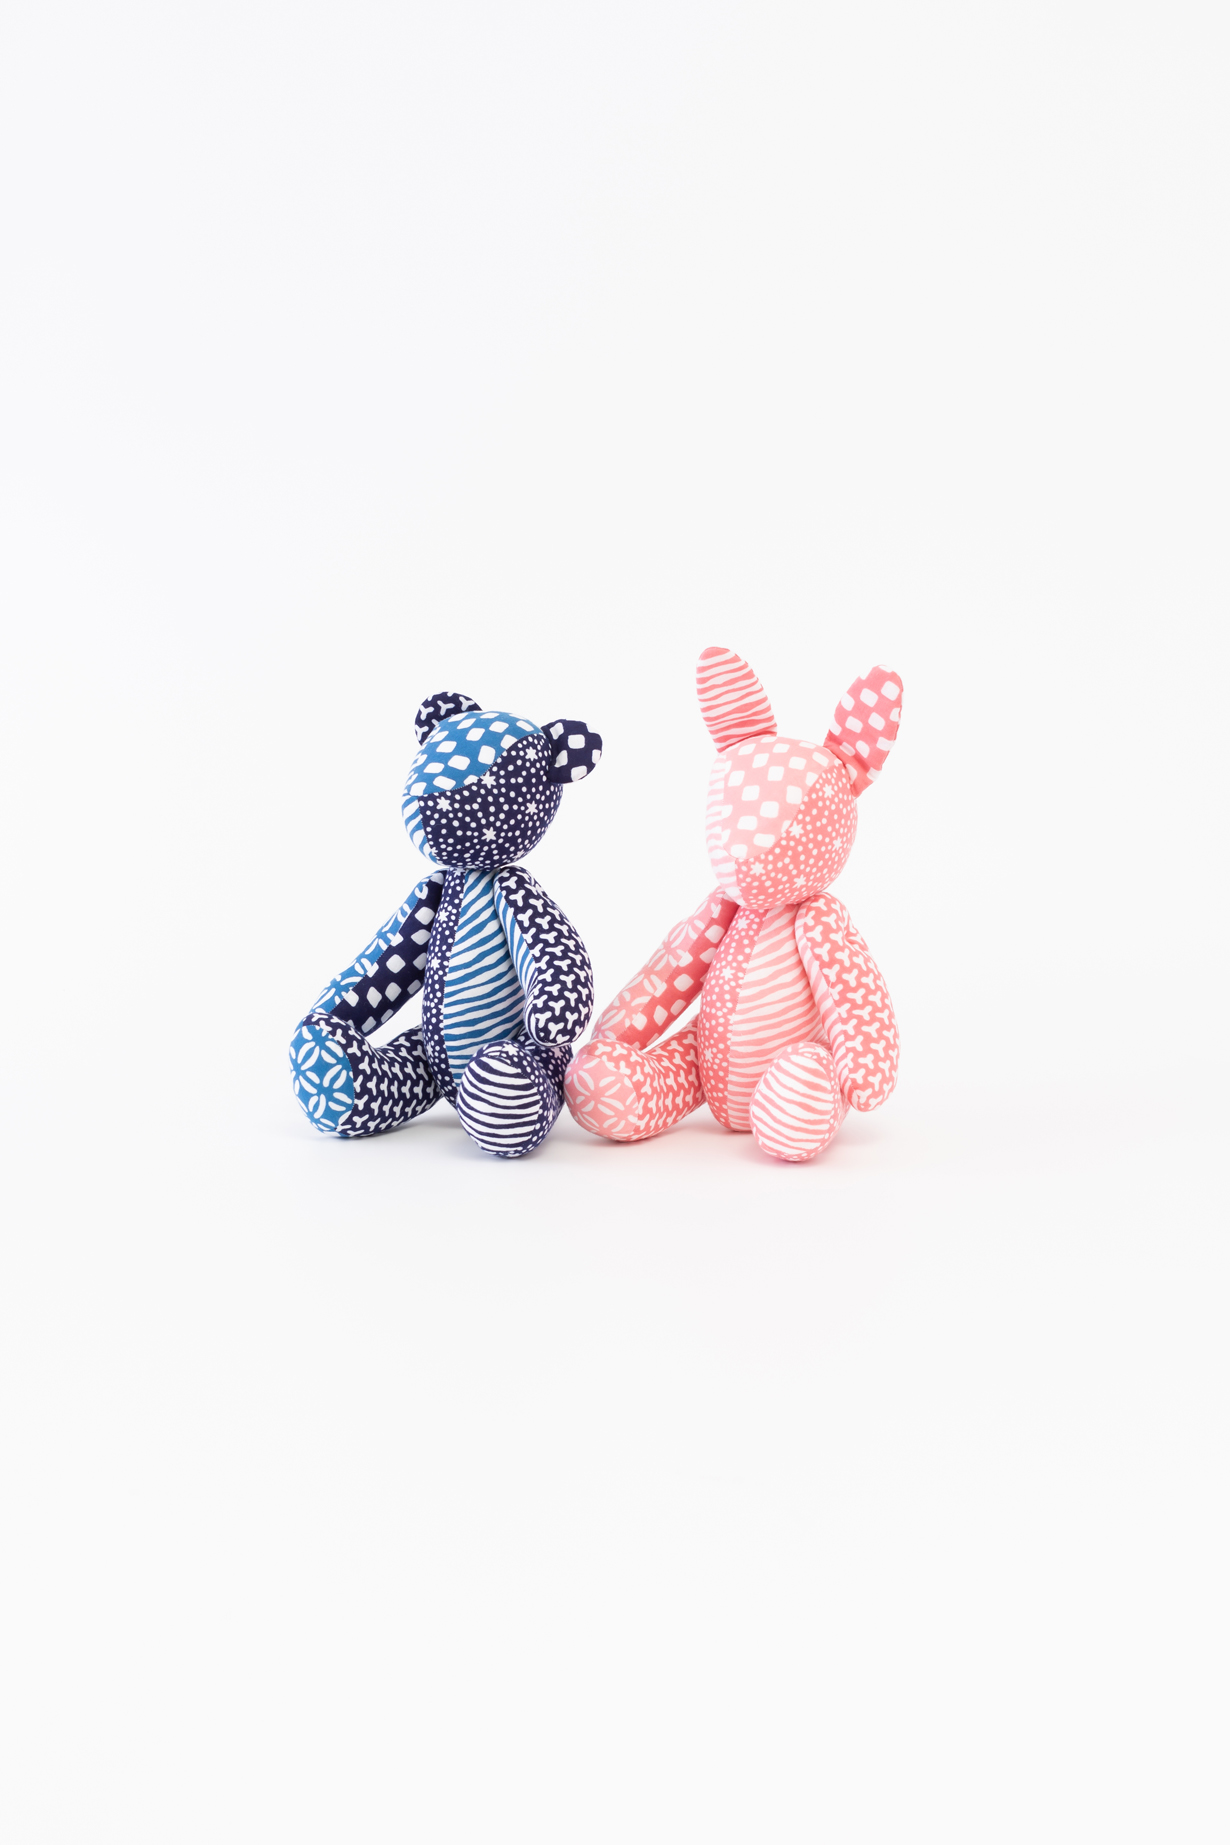 Bear (Blue) & Rabbit (Pink)